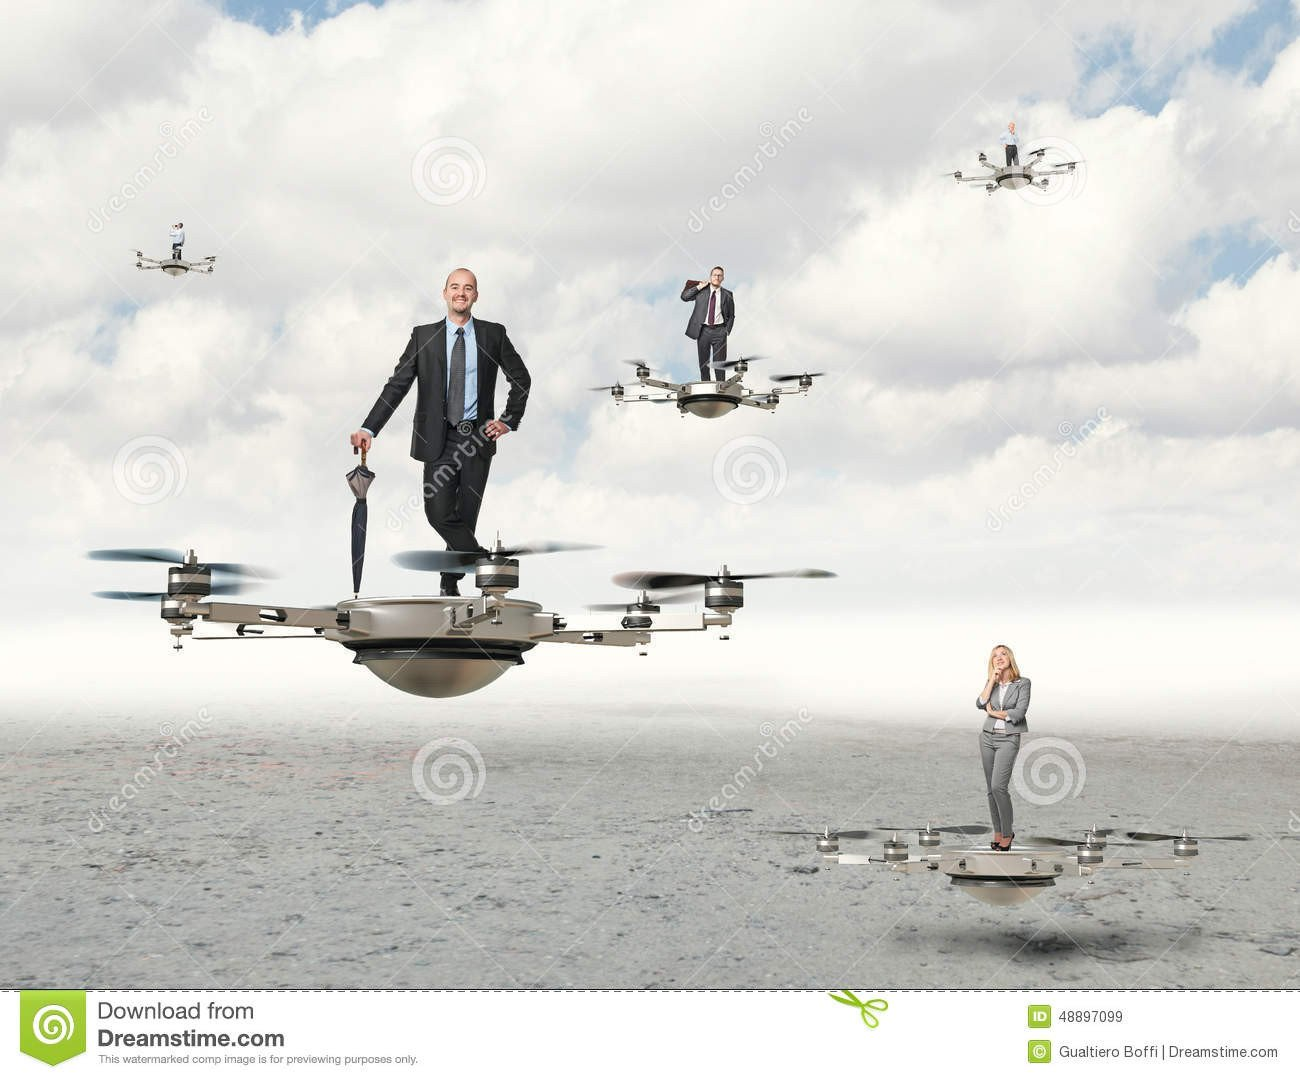 Drone Photography Business Plan Drone Business Stock Image